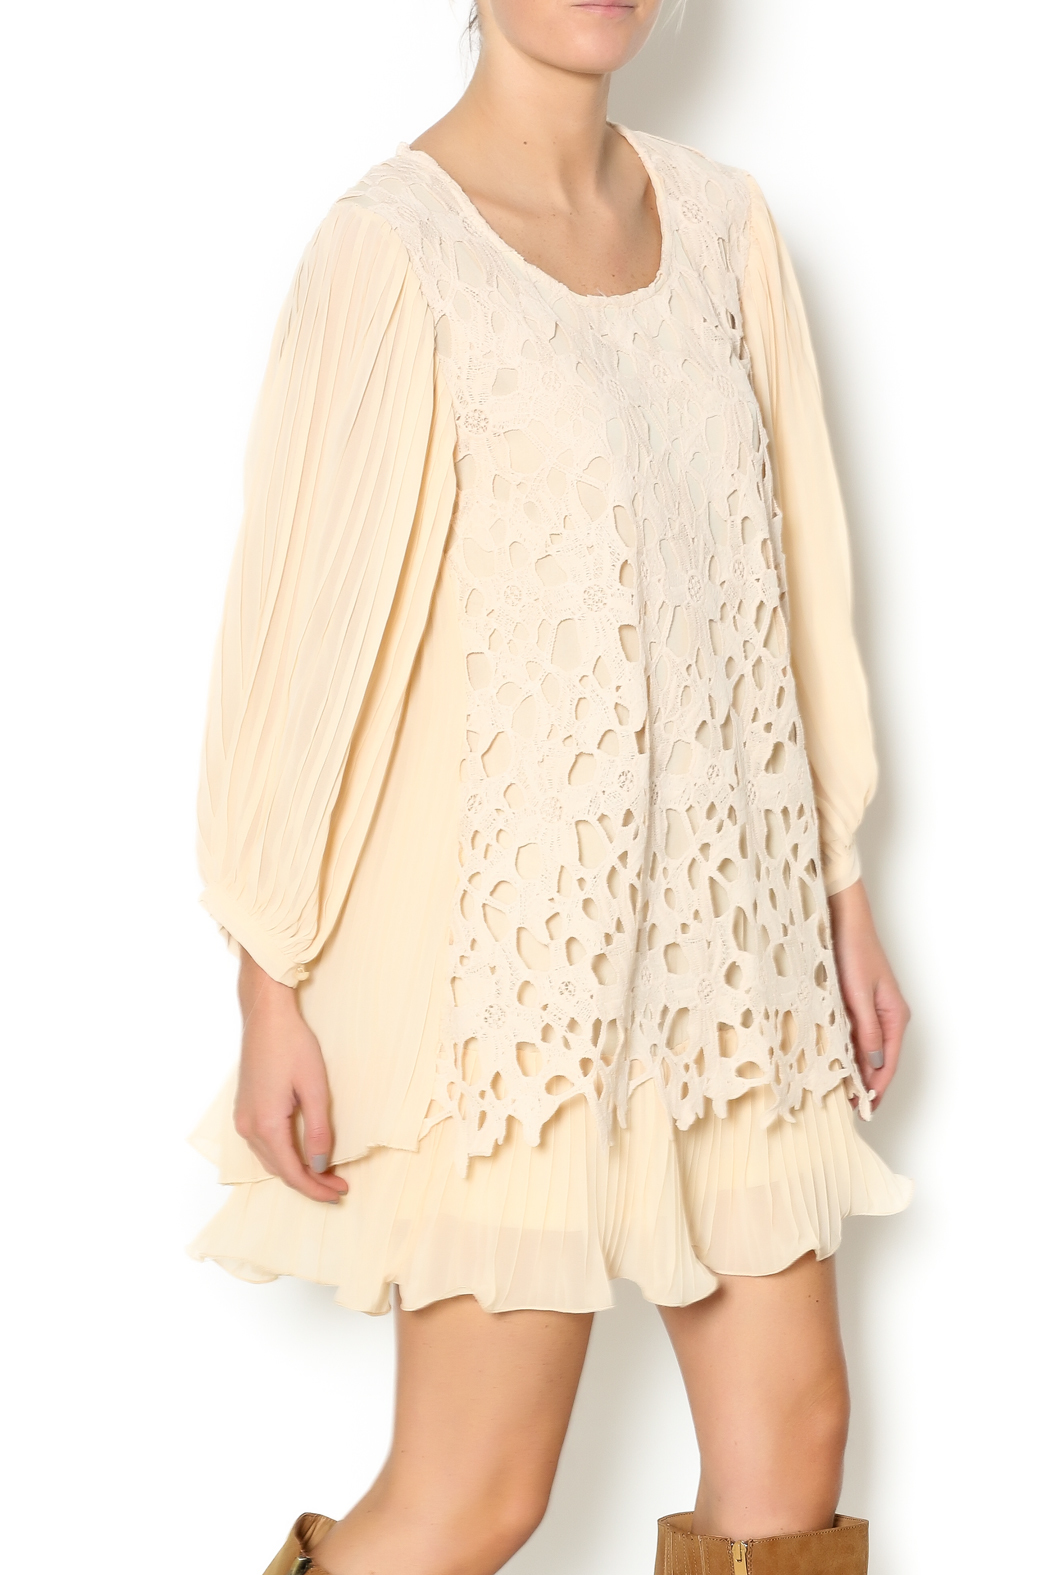 Pretty Angel Cream Lace Blouse from Alabama by The Right Dress ...